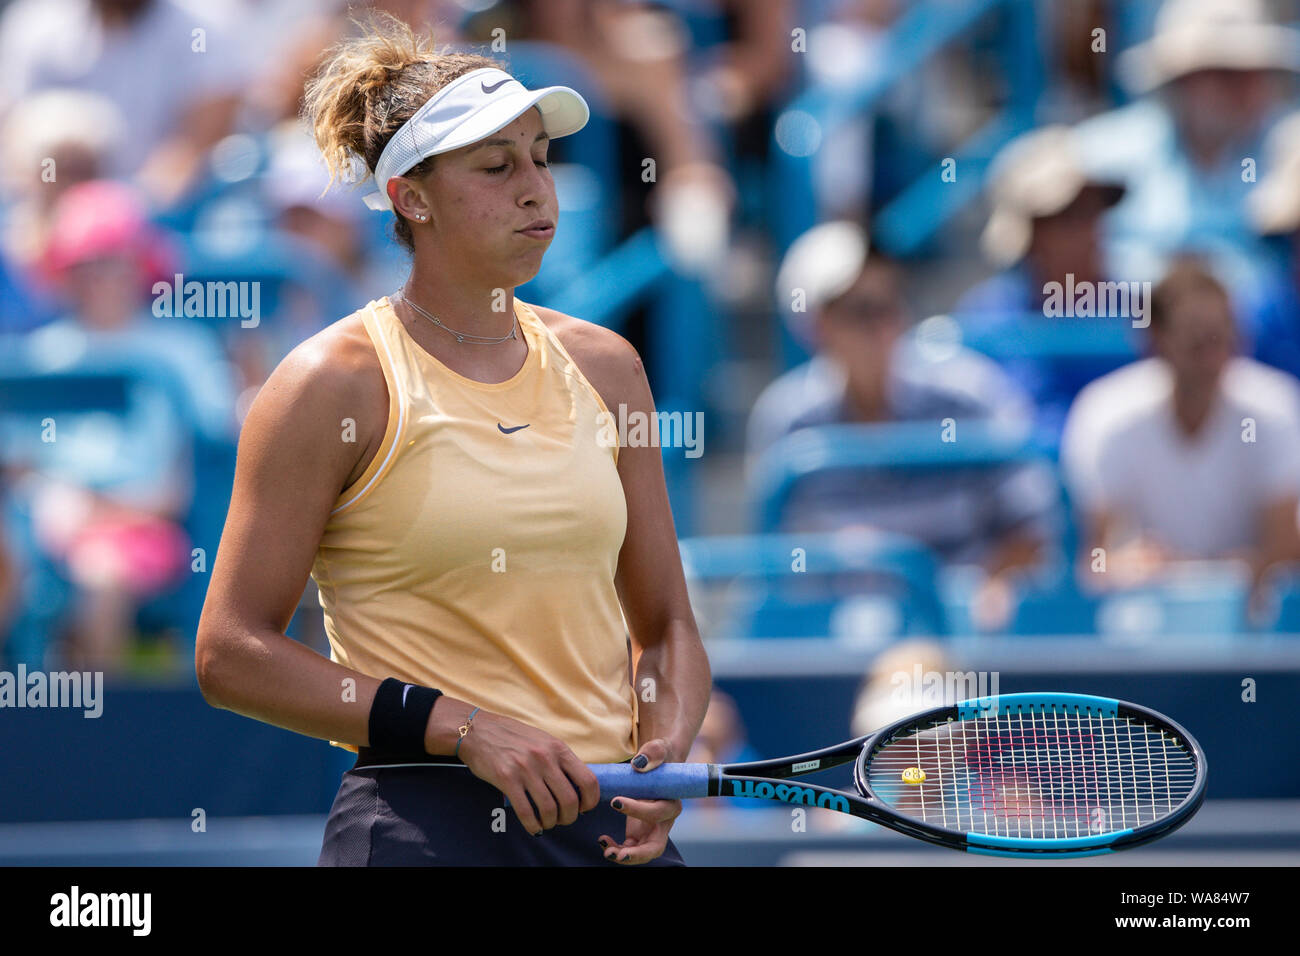 August 18, 2019, Mason, Ohio, USA: Madison Keys (USA) reacts to a shot during the Women's Final of the Western and Southern Open at the Lindner Family Tennis Center, Mason, Oh. (Credit Image: © Scott Stuart/ZUMA Wire) Stock Photo